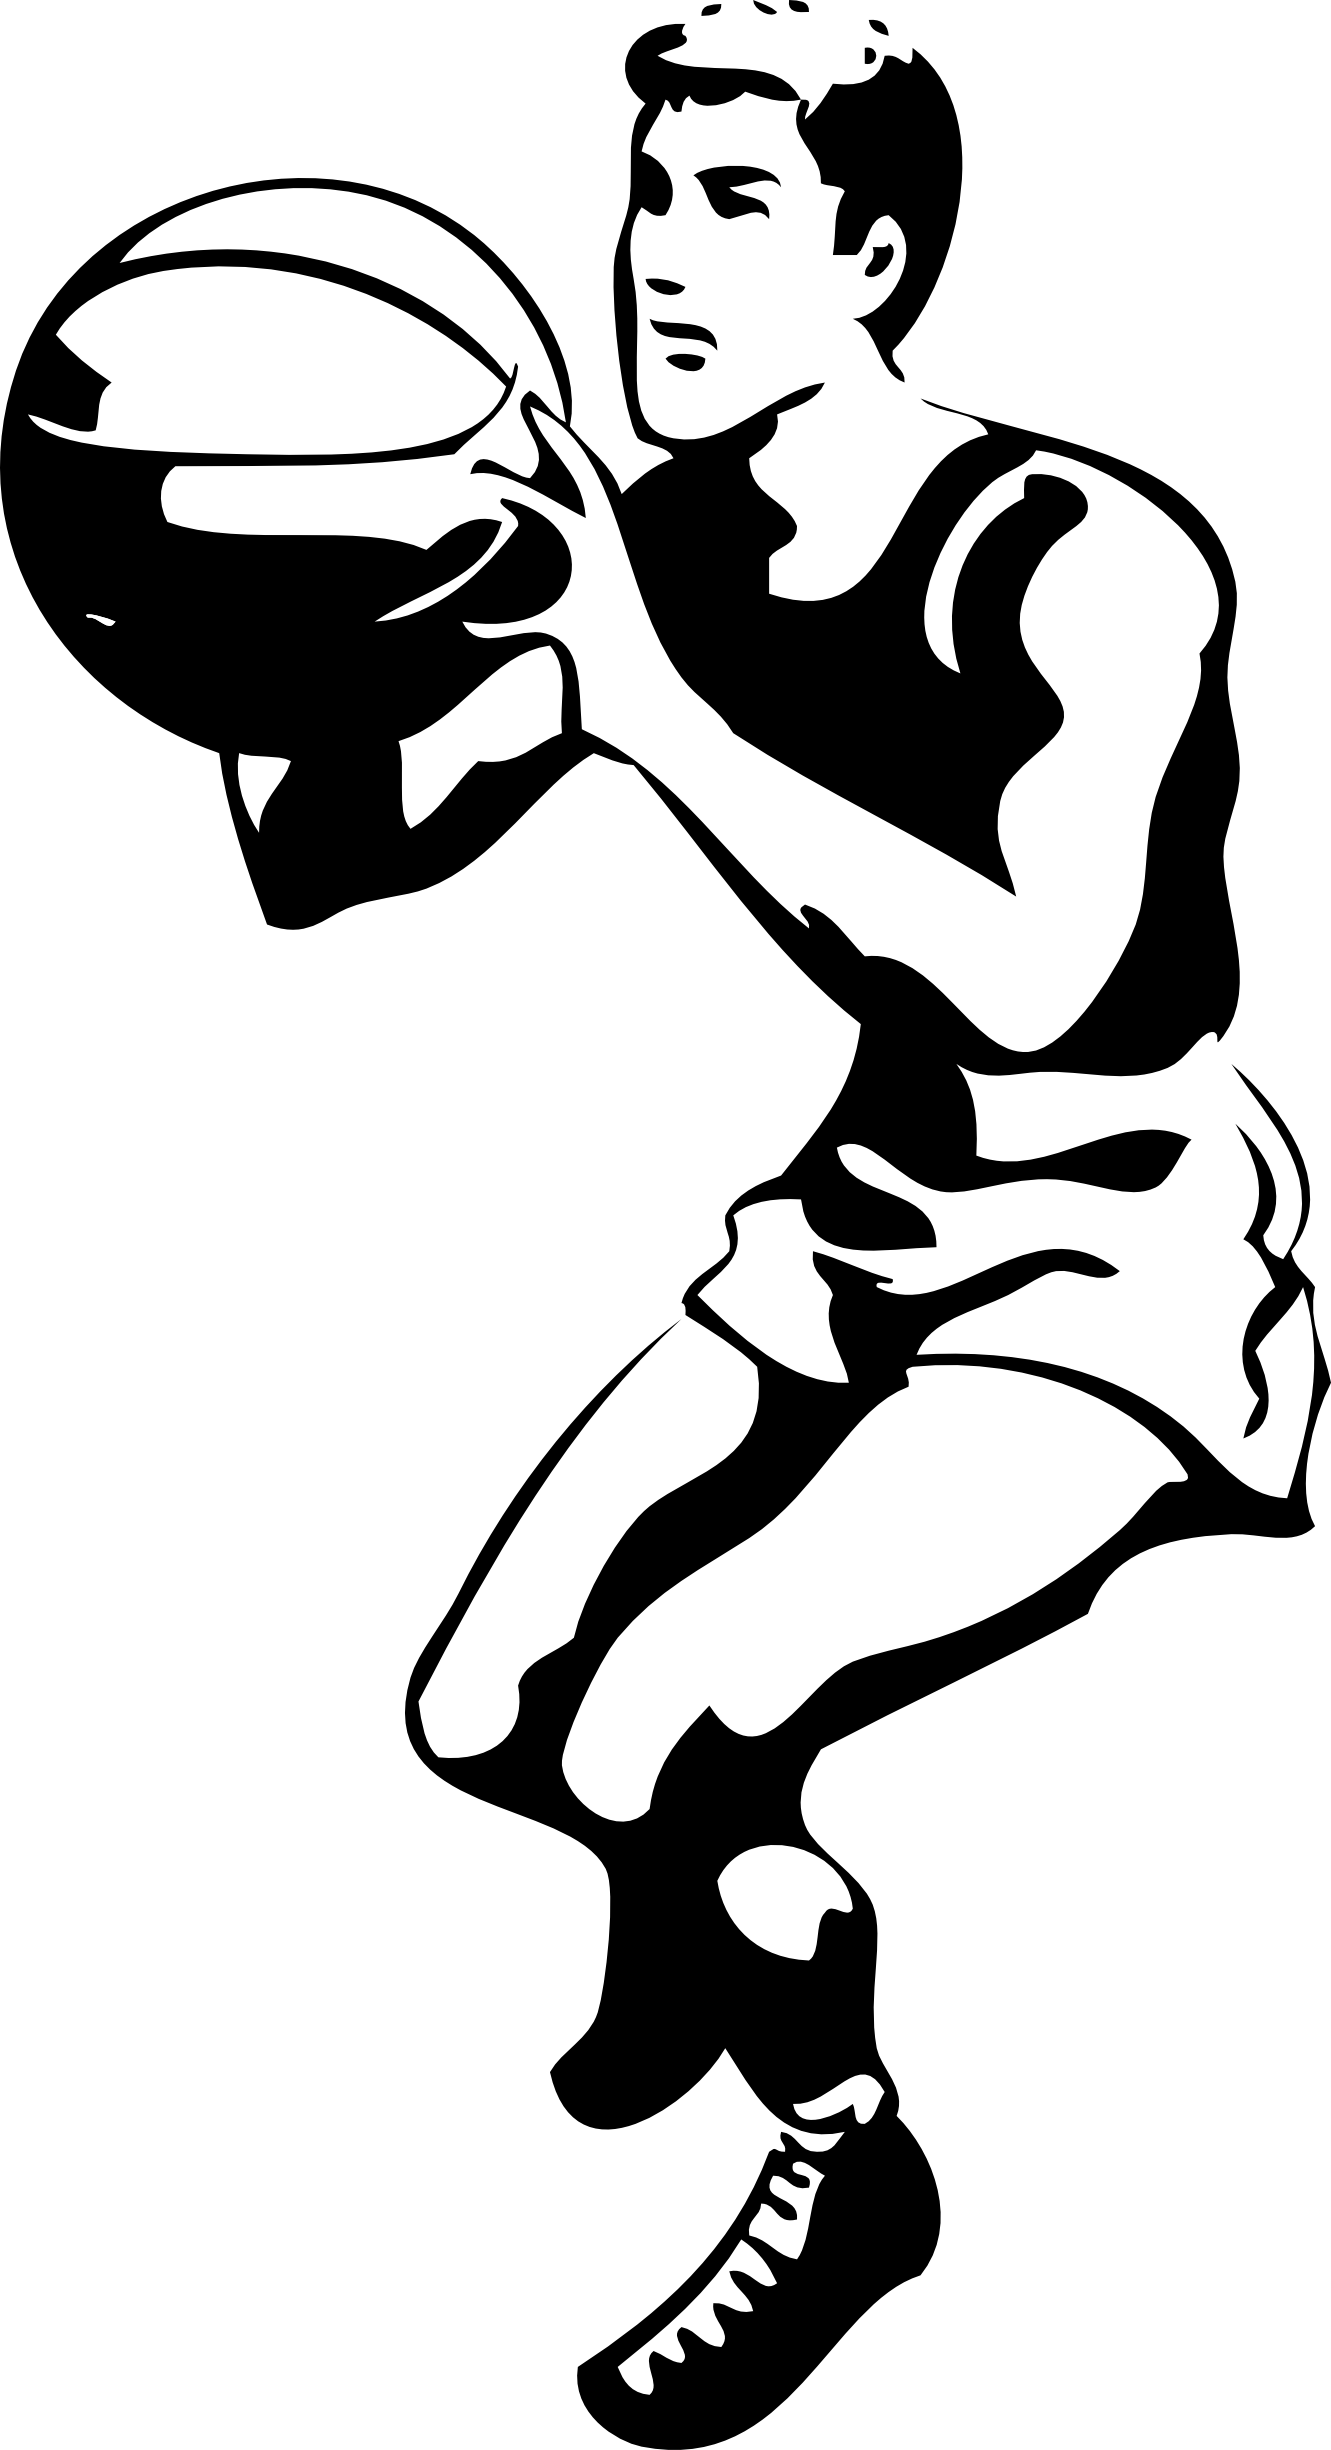 Basketball player black and. Net clipart basket ball